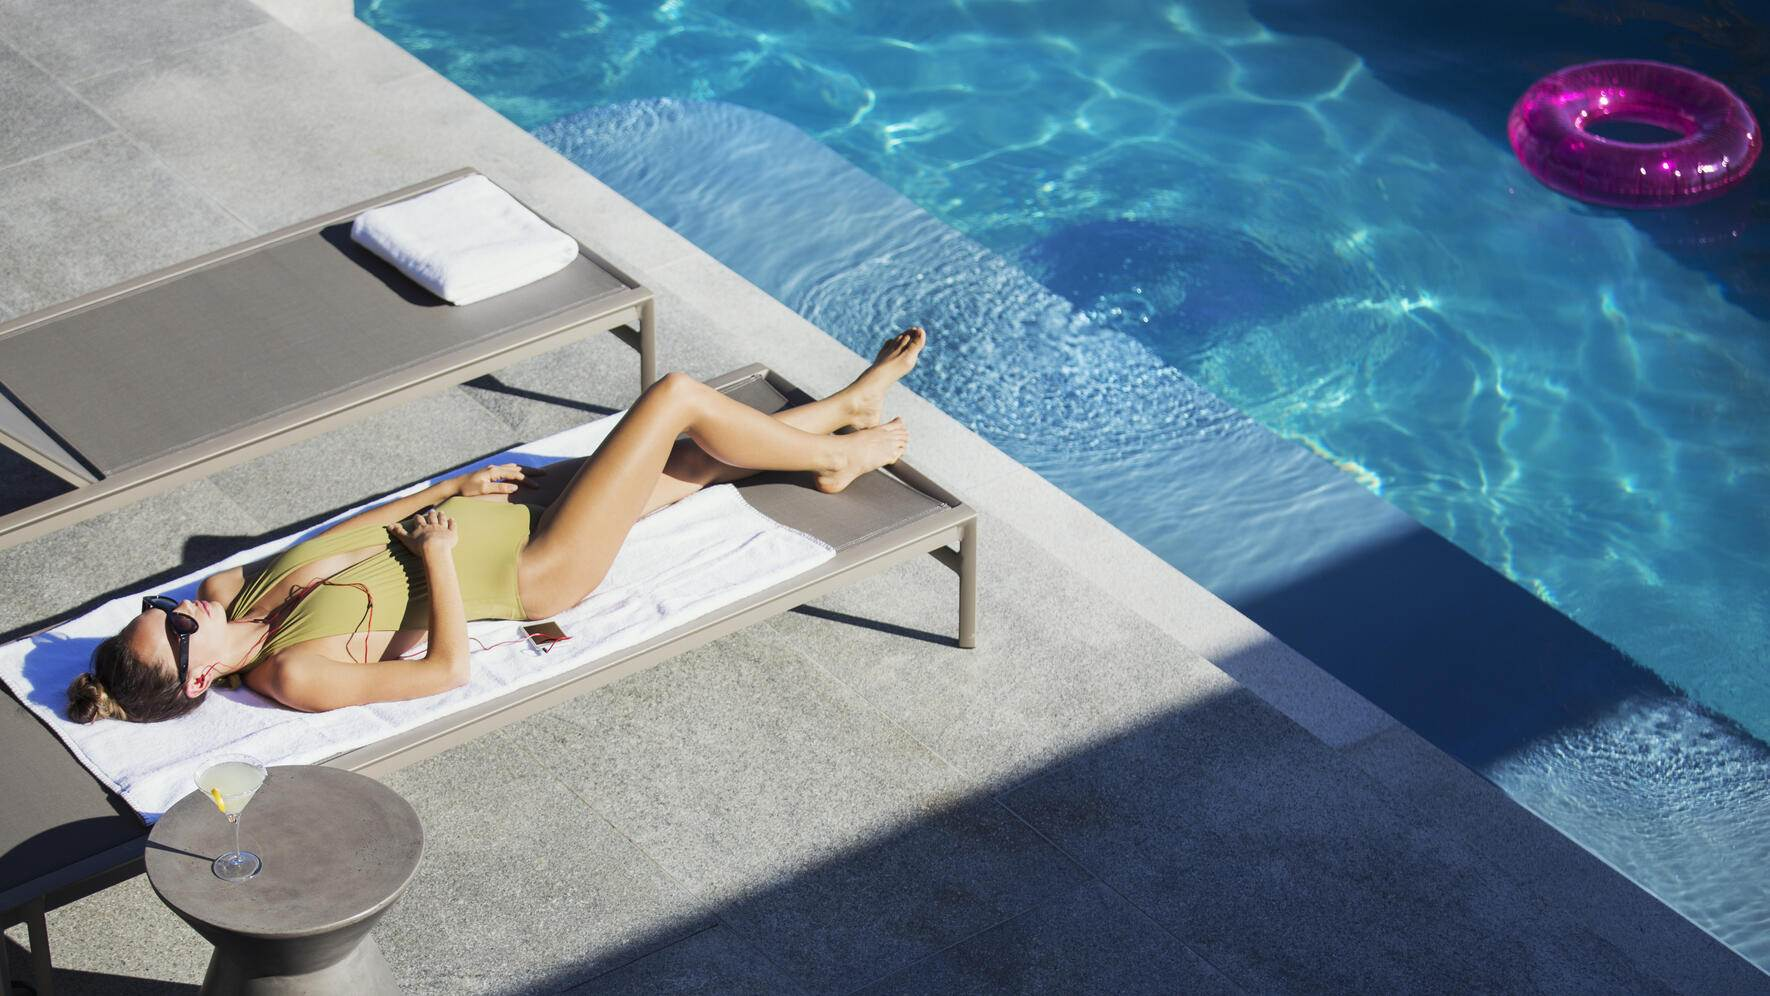 Woman in bathing suit sunbathing on lounge chair at sunny luxury poolside